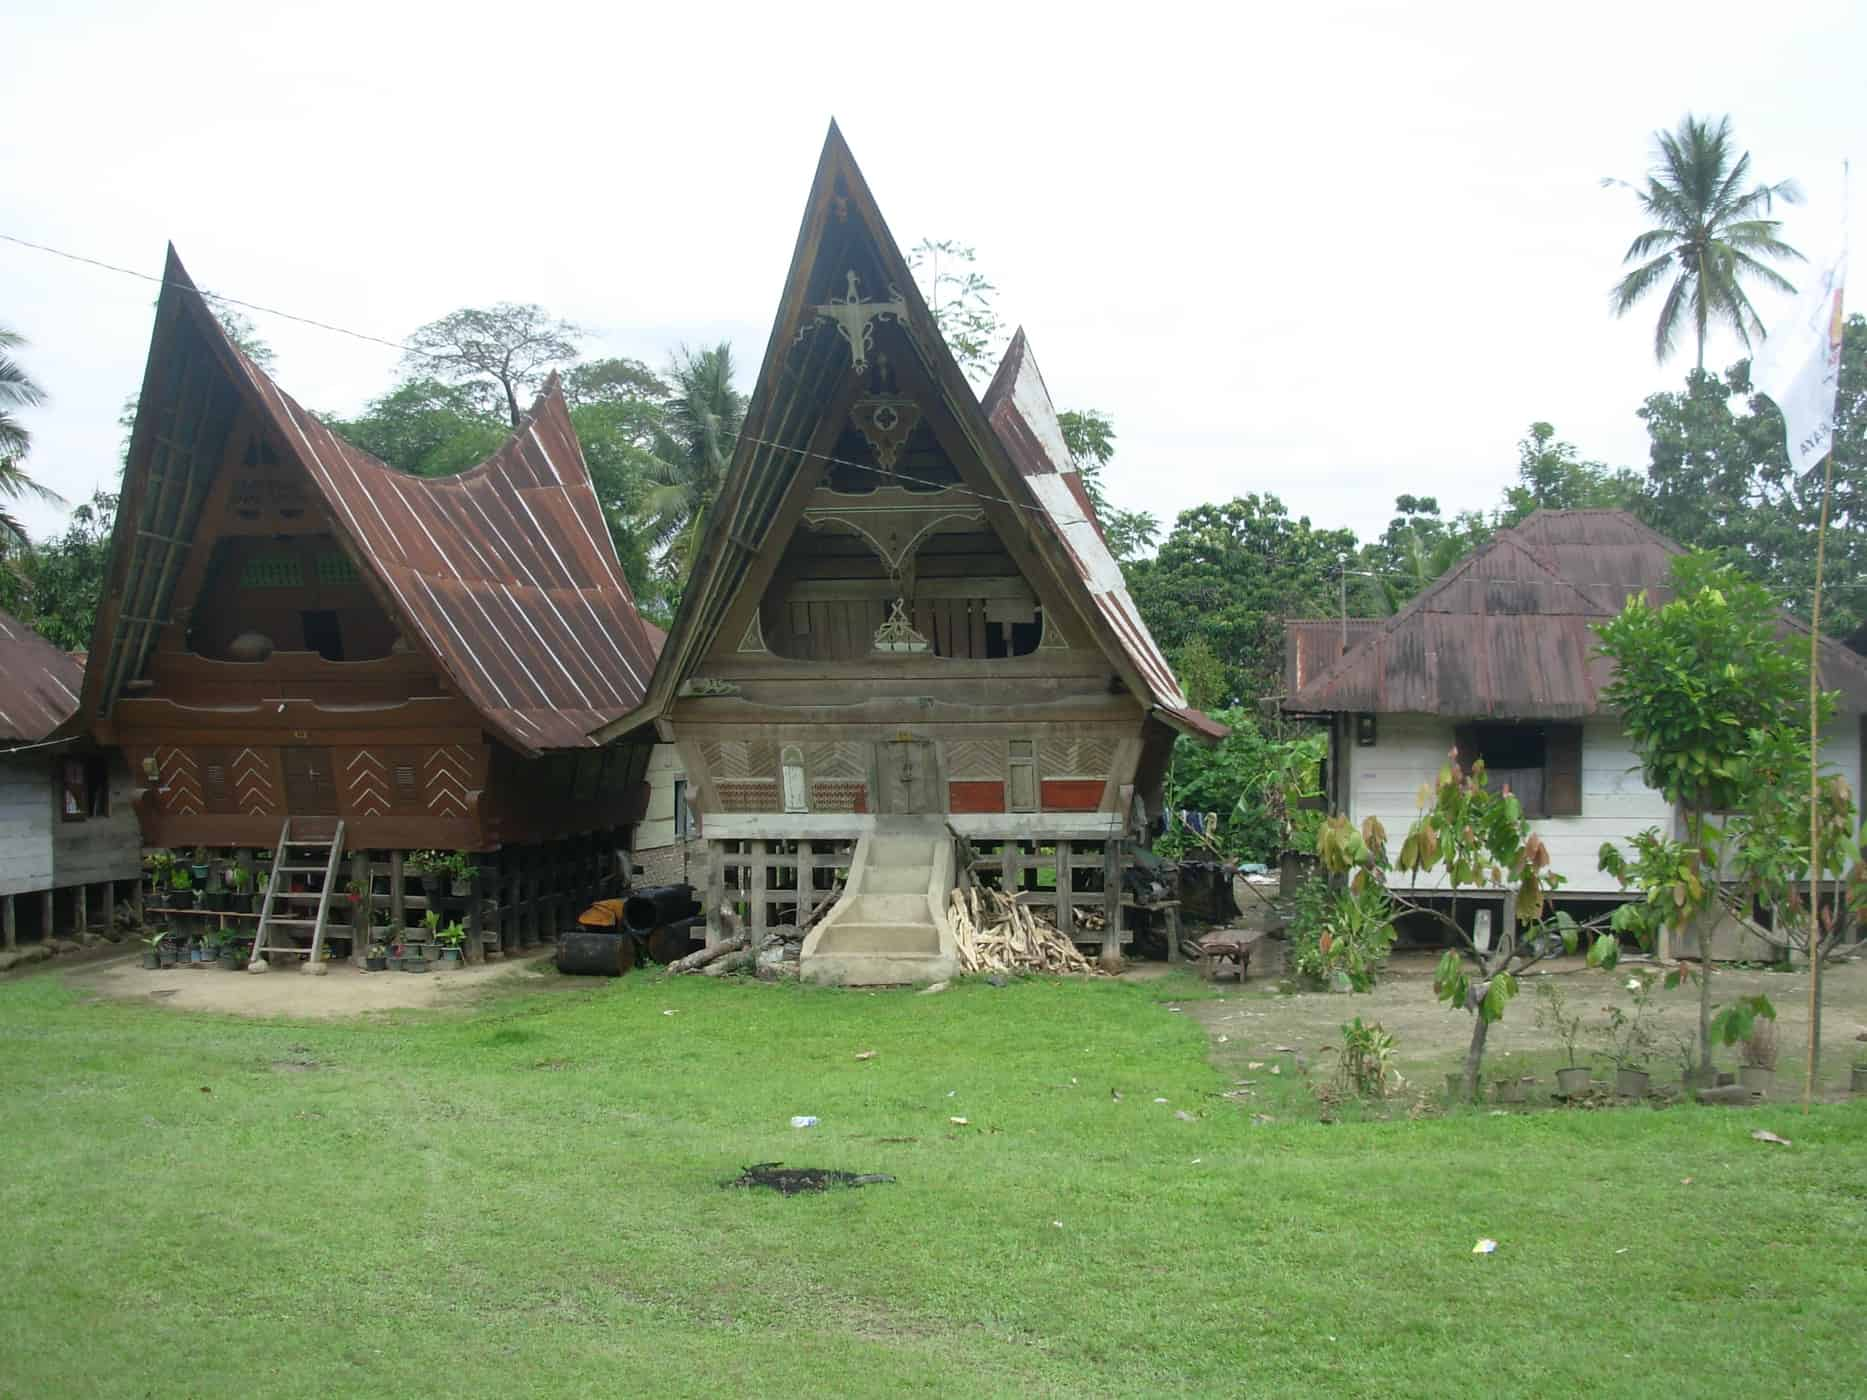 The boat-shaped houses of Pulau Samosir, Sumatra. Homes to the 'Batak' people.